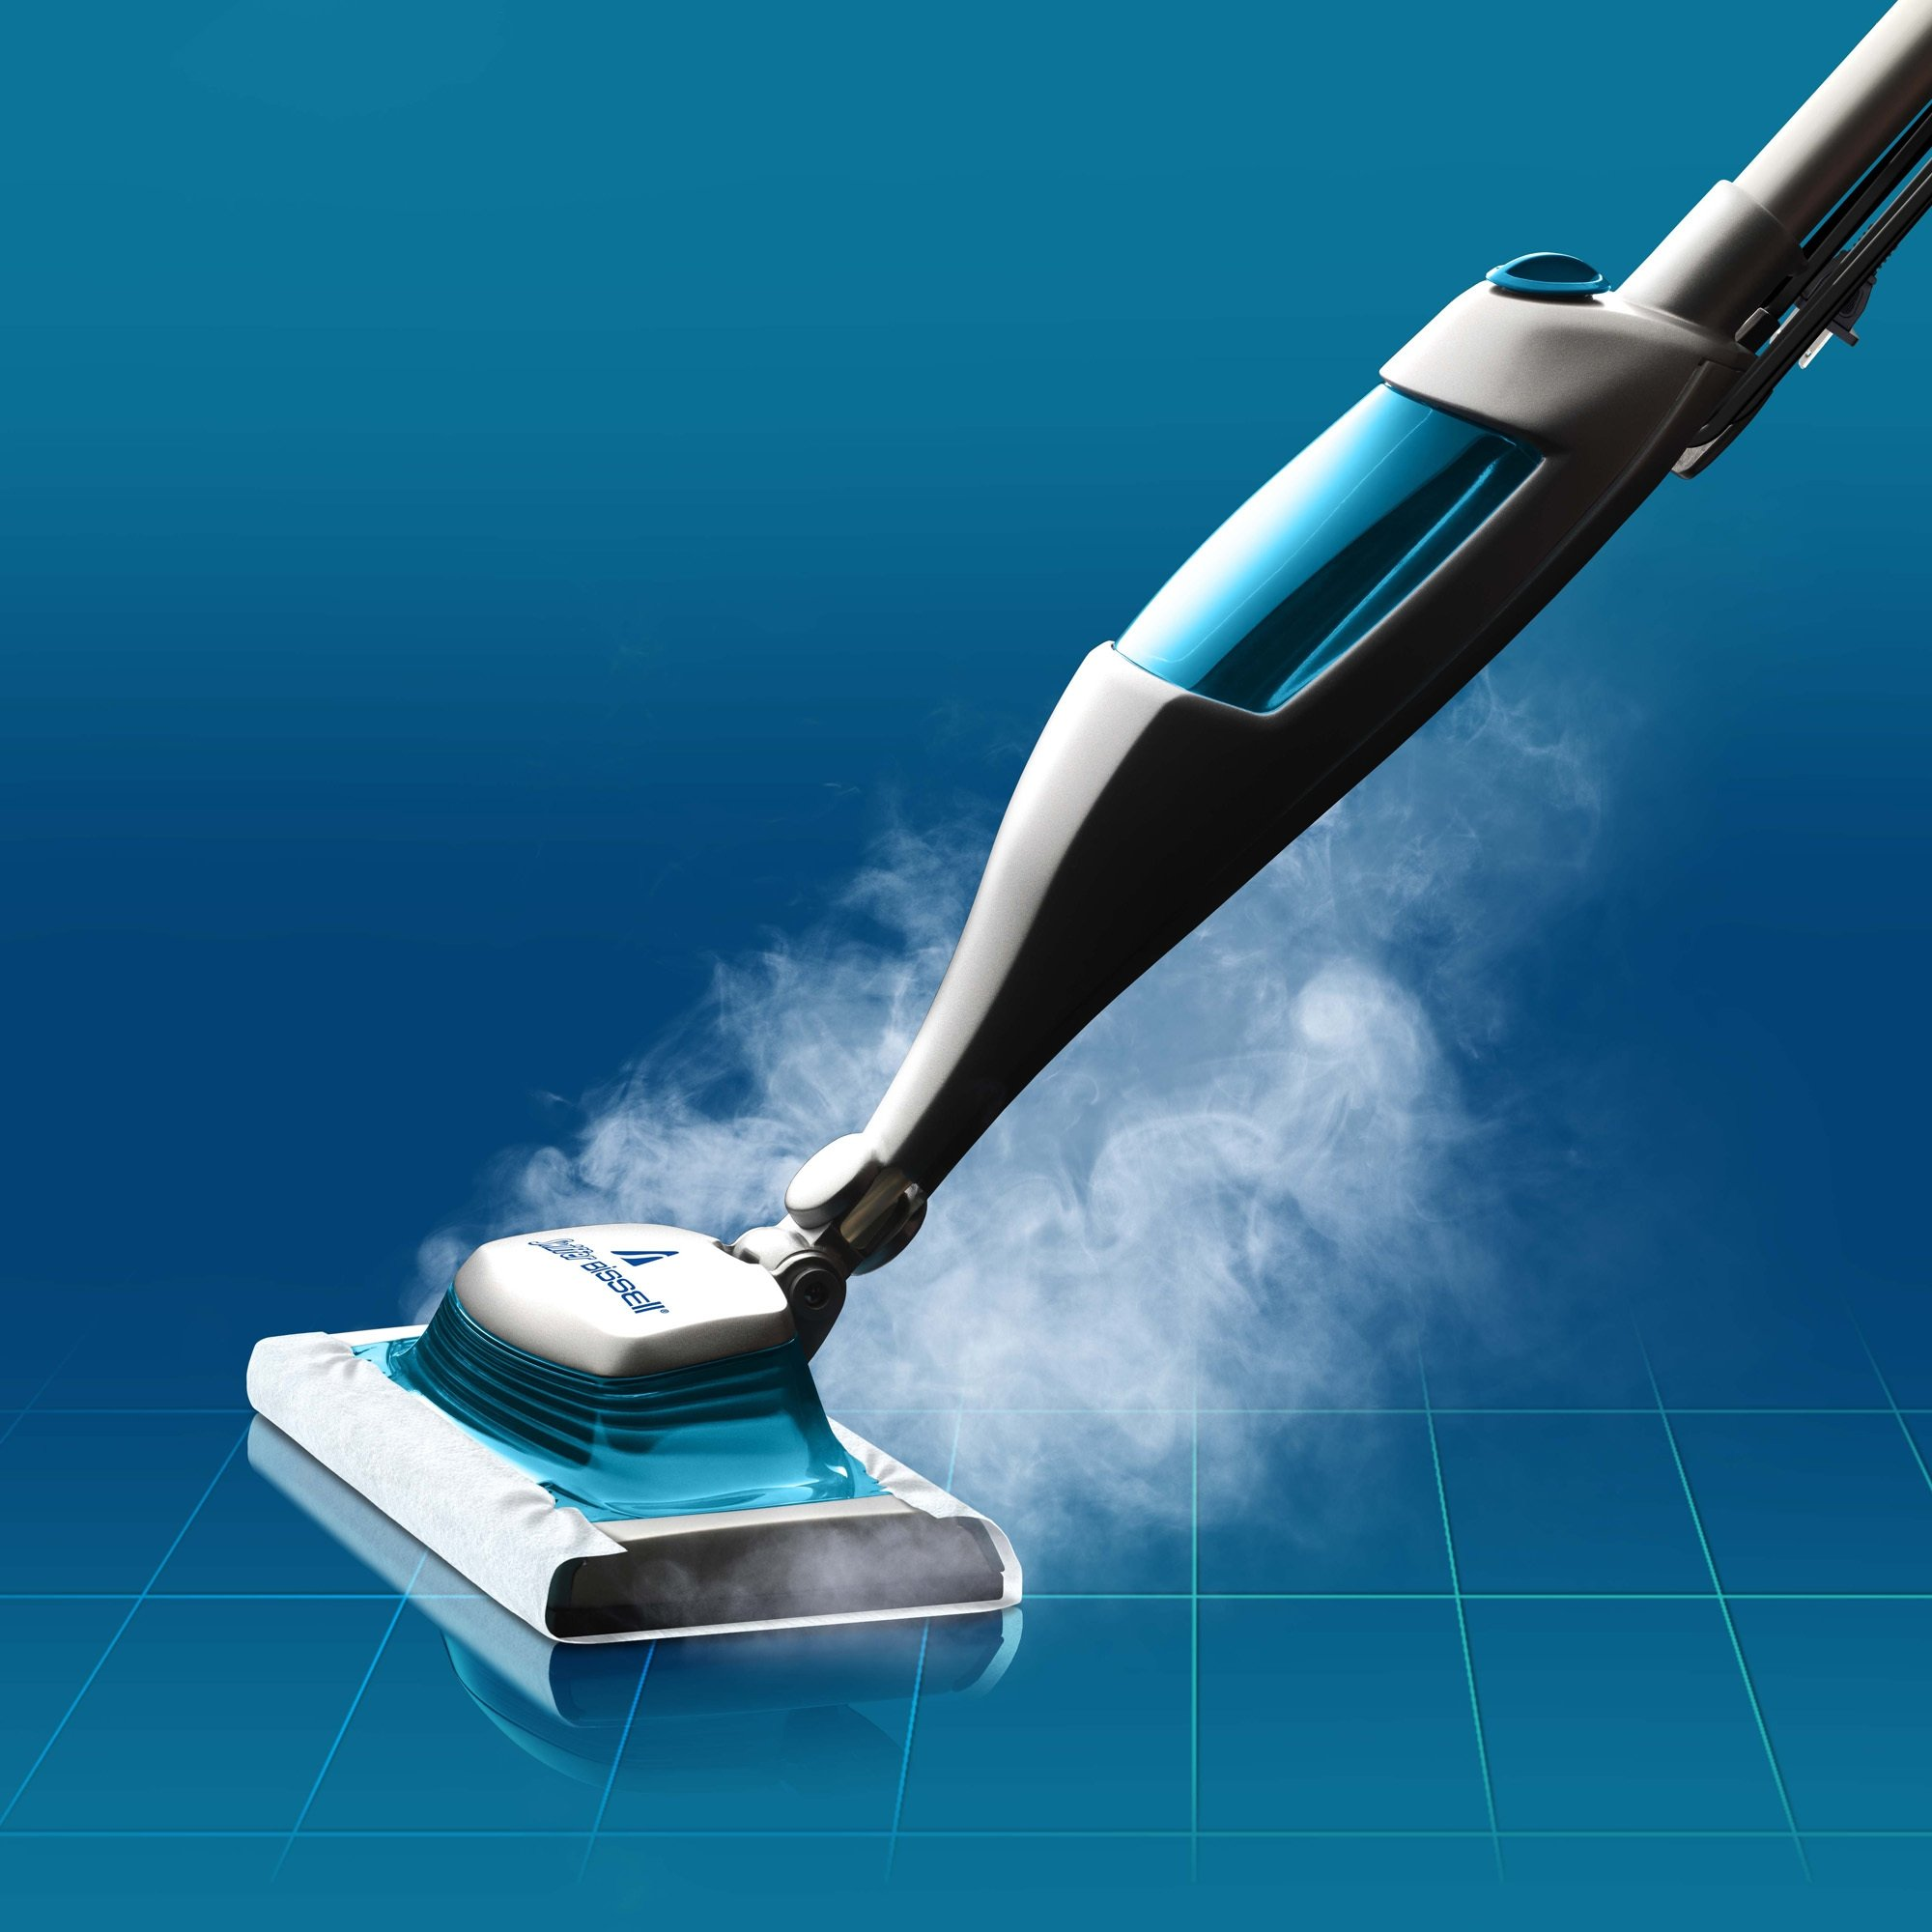 Swiffer SteamBoost Deep Cleaning Steam Mop Starter Kit, Powered by Bissel, Hardwood and Floor Cleaner, Includes: 1 Steam Mop, 2 Steam Mopping Cloth by Swiffer (Image #3)